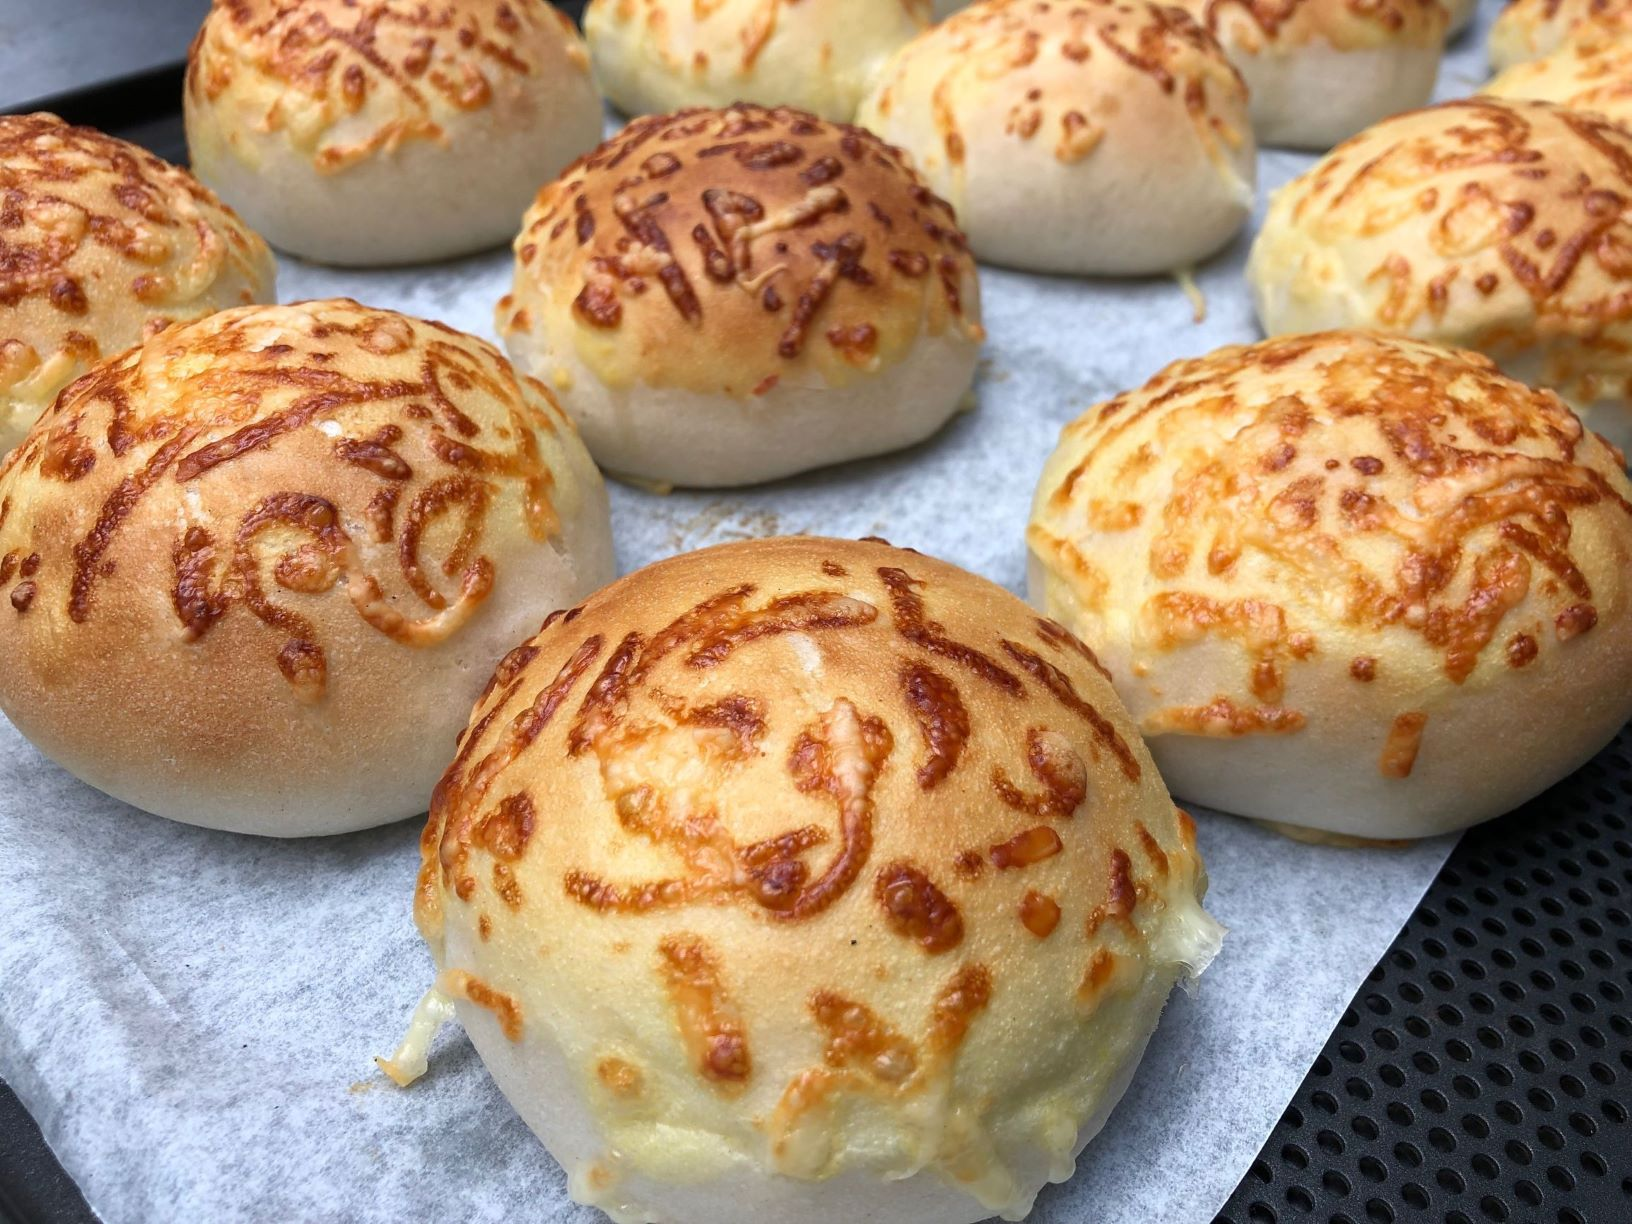 Cheese buns made with a FoodJet cheese depositor